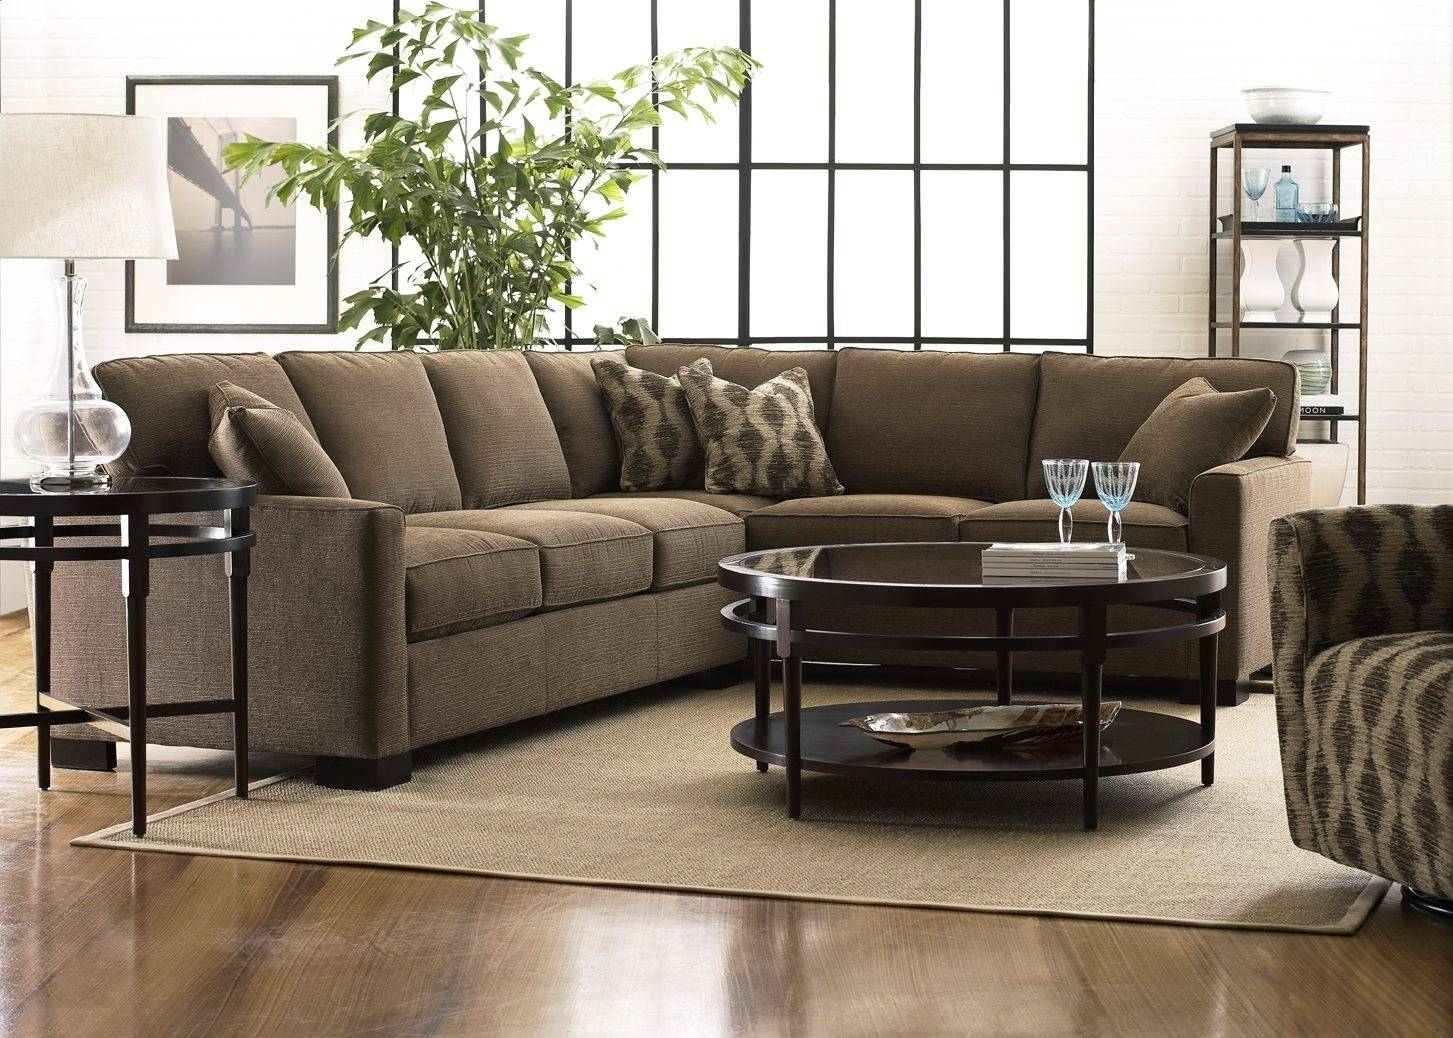 Albany Industries Sectional Sofa | Interior Design regarding Albany Industries Sectional Sofa (Image 4 of 30)